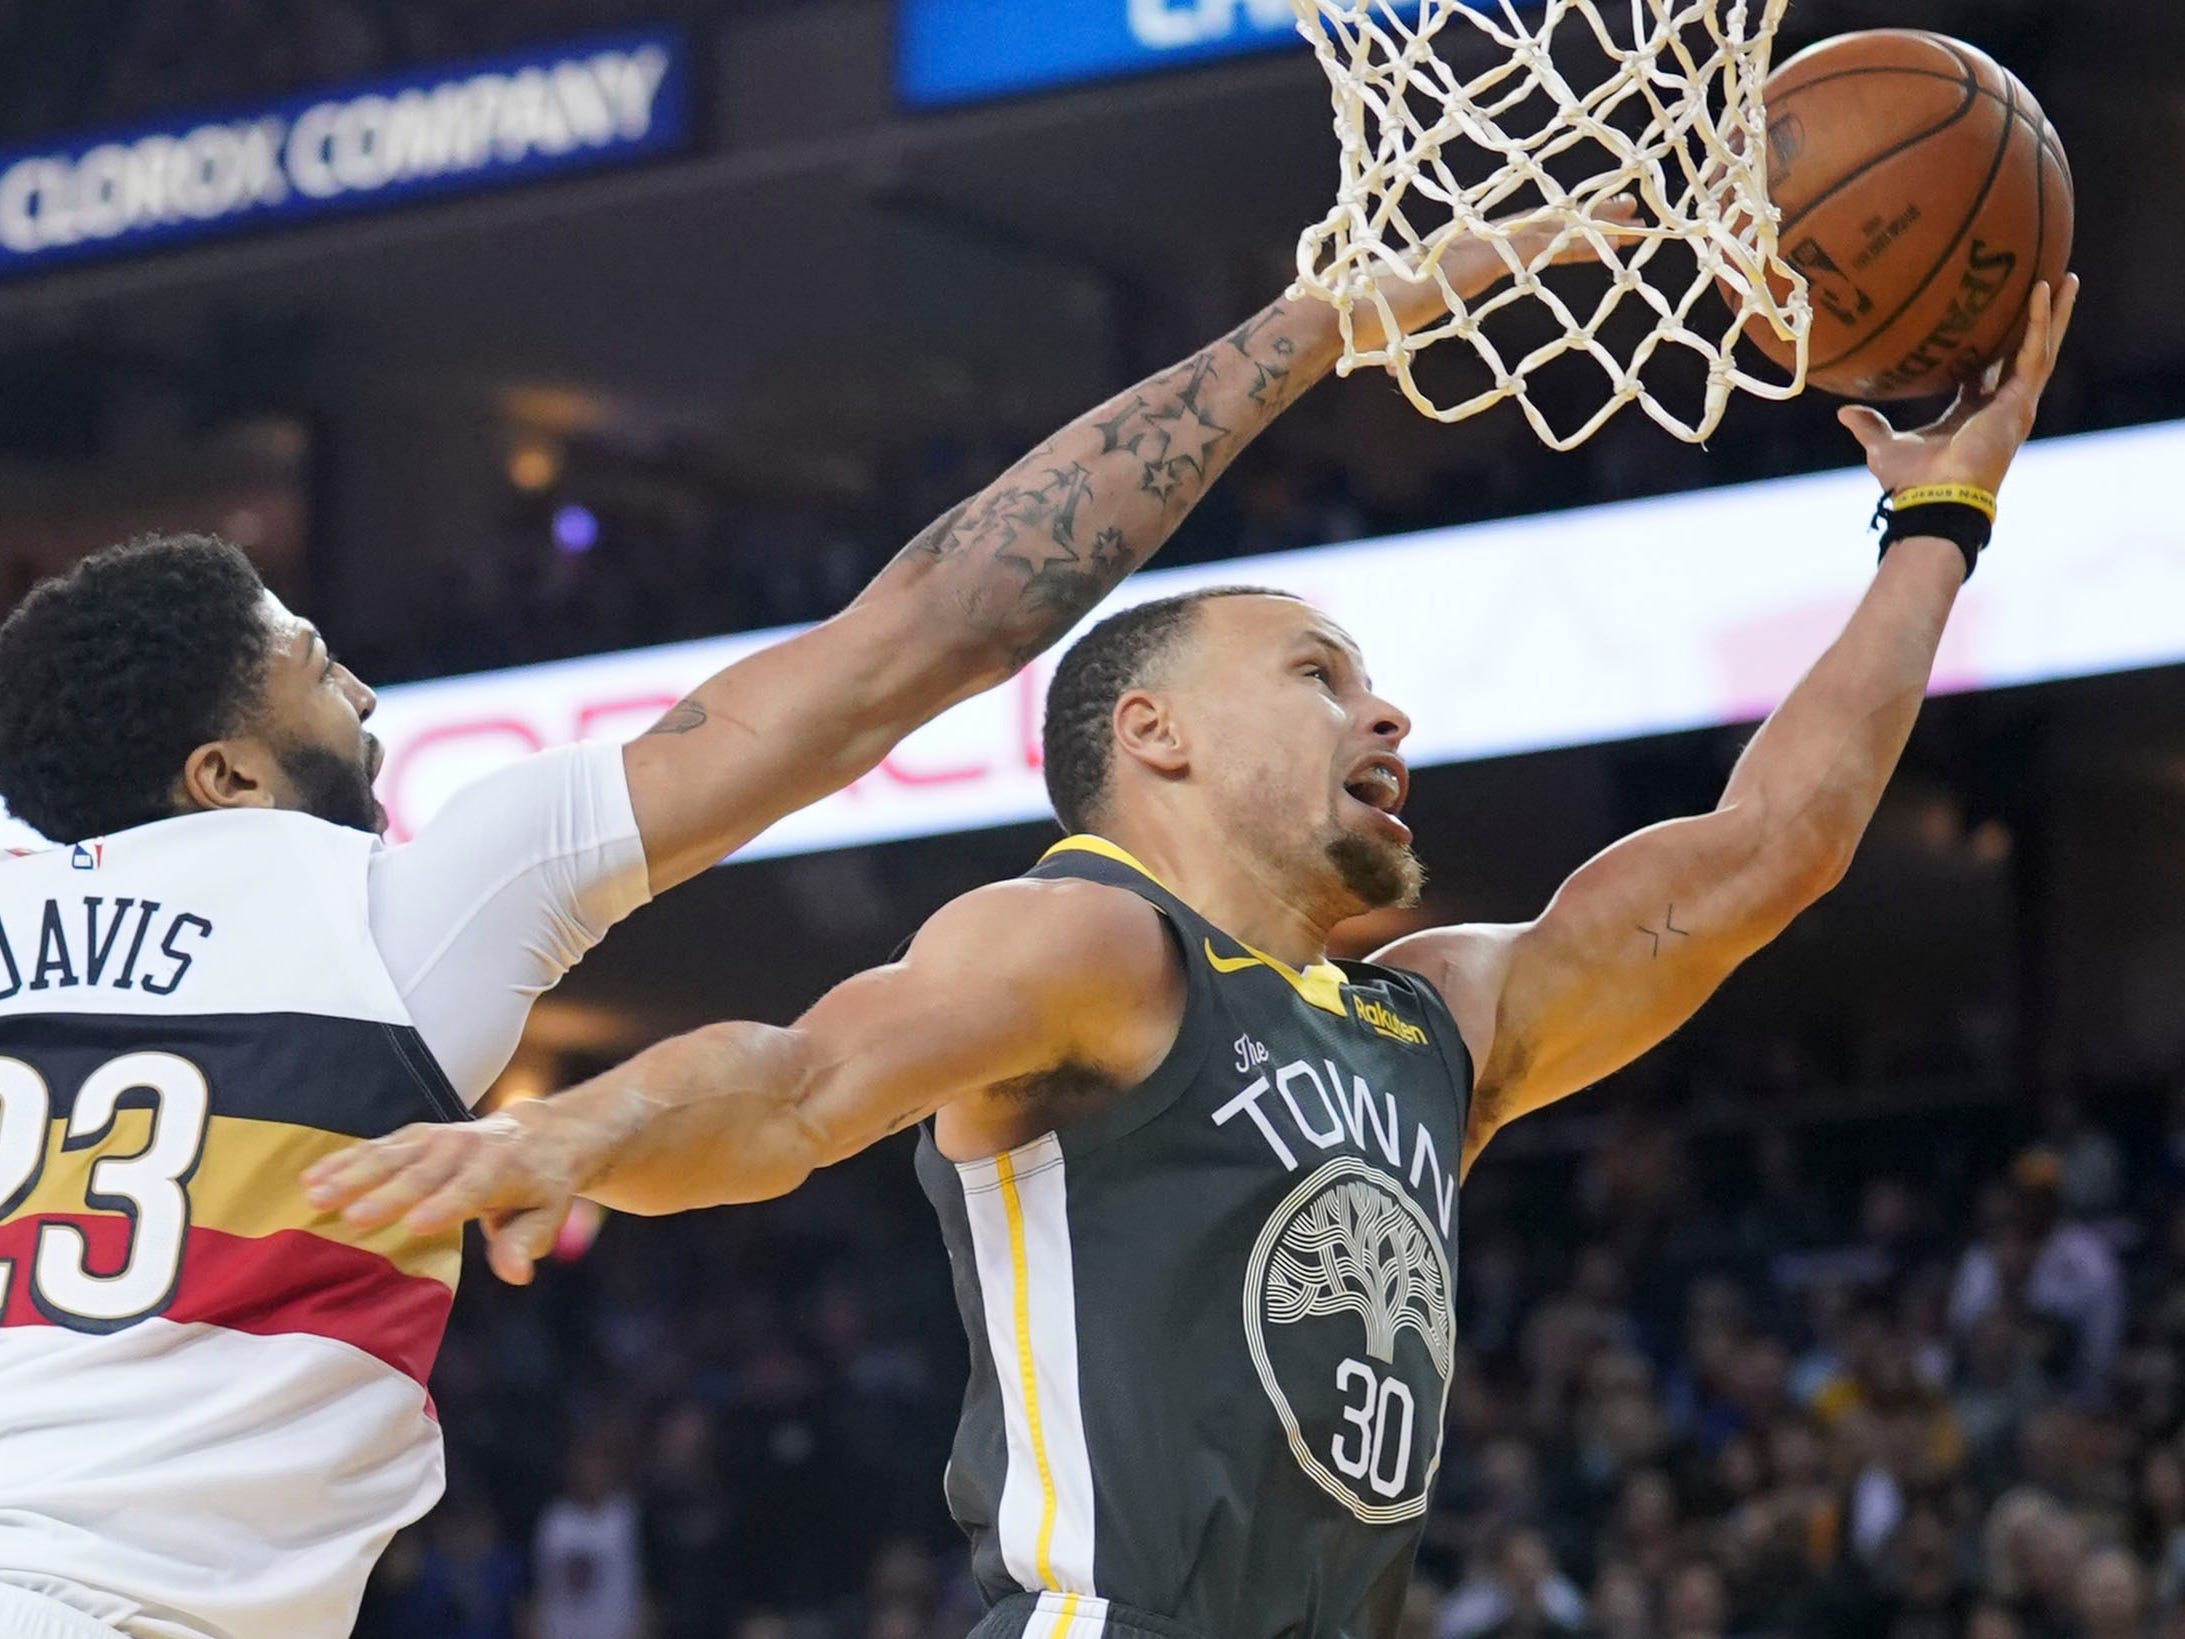 Jan. 16: Warriors guard Stephen Curry (30) drives to the bucket against Pelicans defender Anthony Davis (23) during the fourth quarter at Oracle Arena in Oakland.